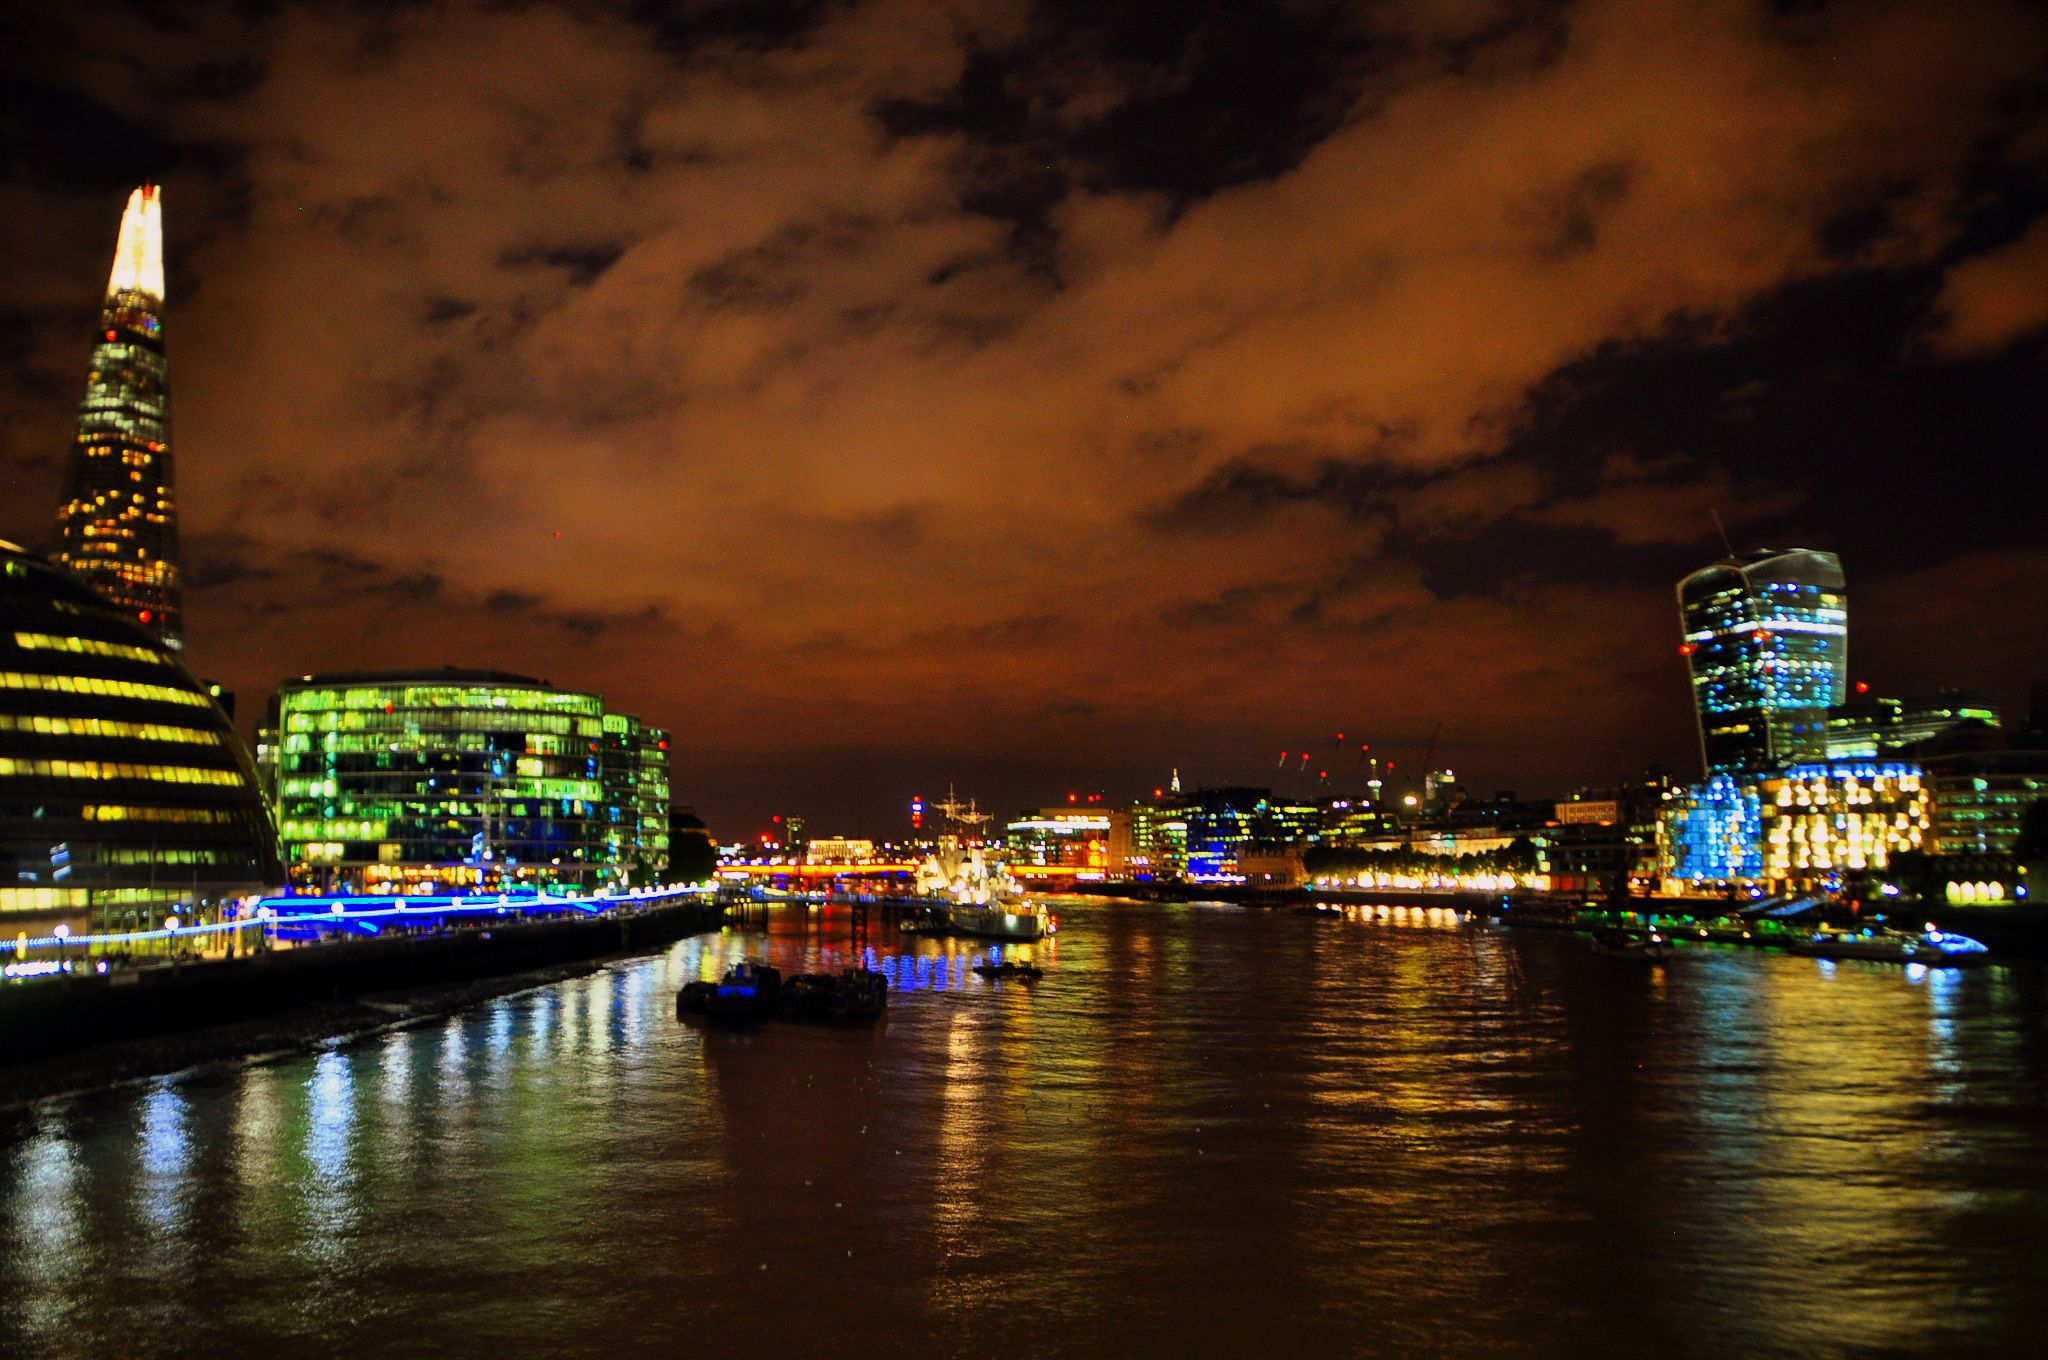 london by night by ralucanechifor395